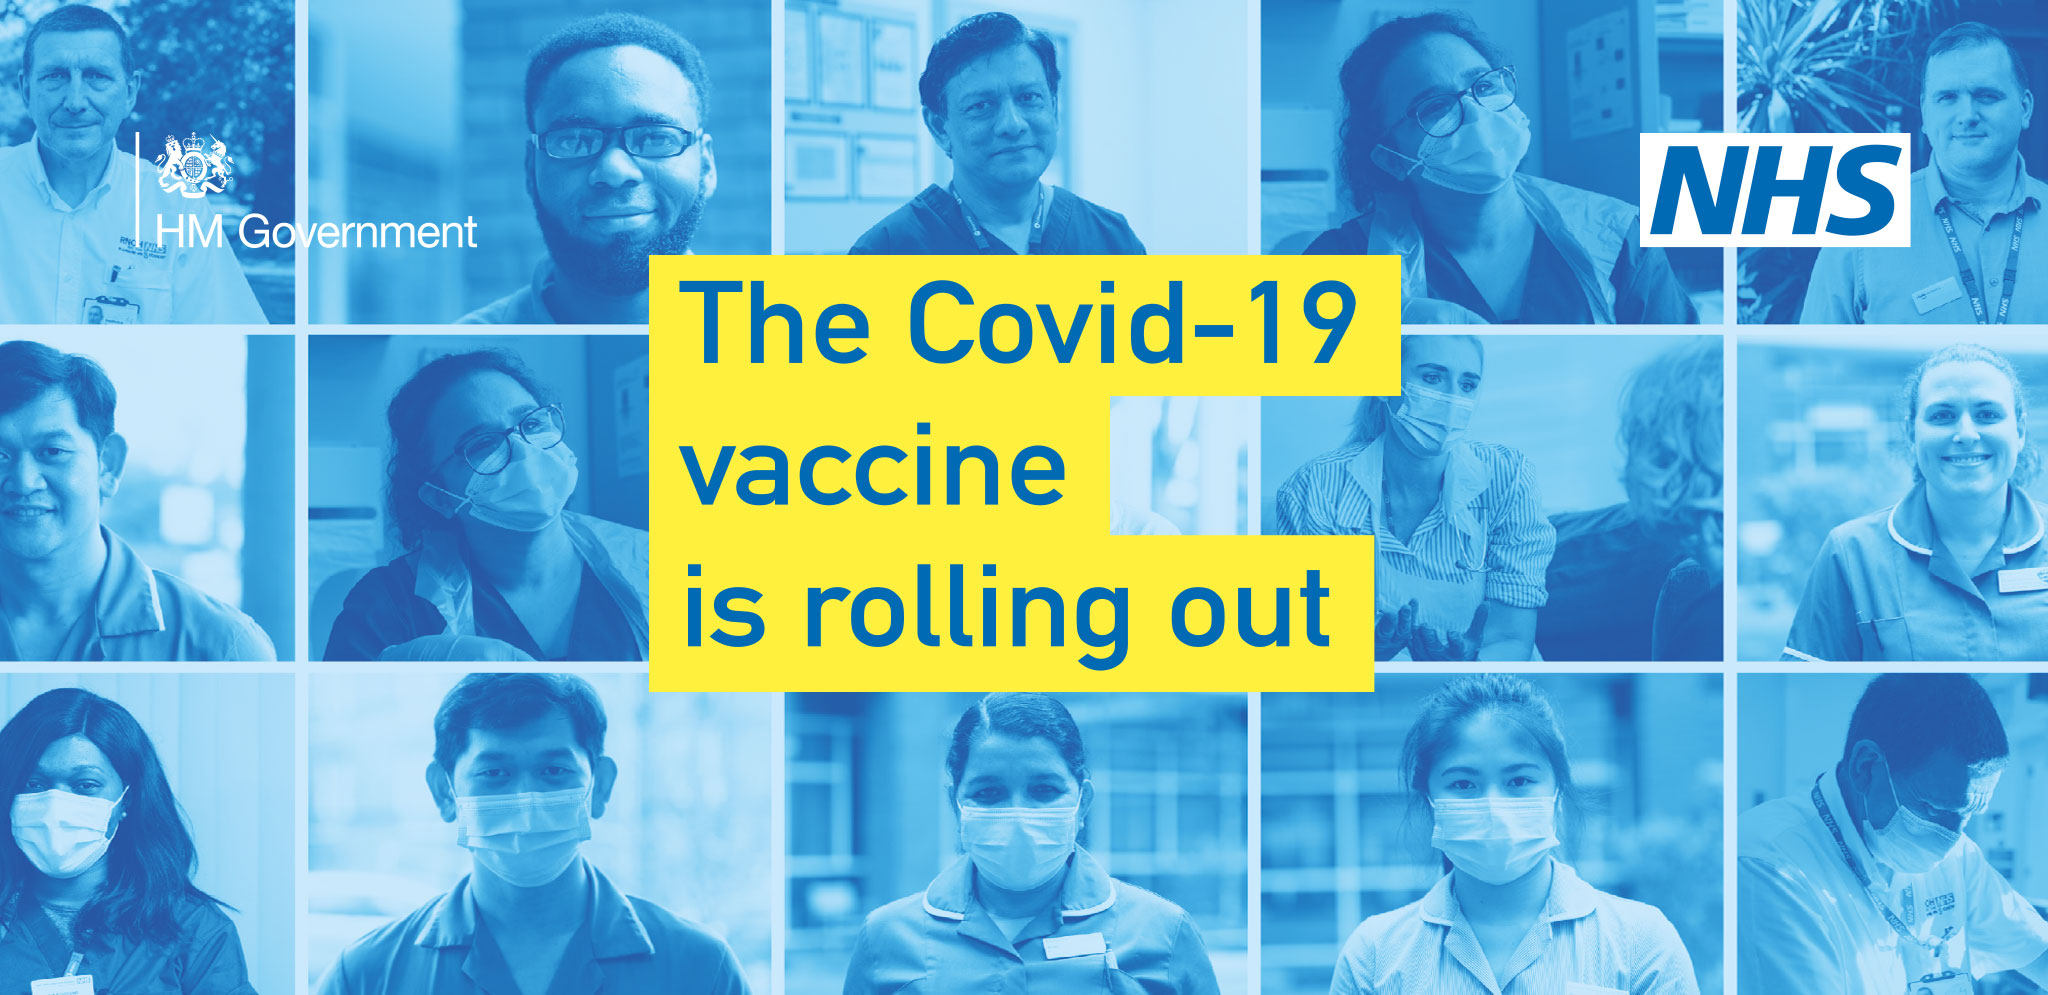 The Covid-19 vaccine is rolling out